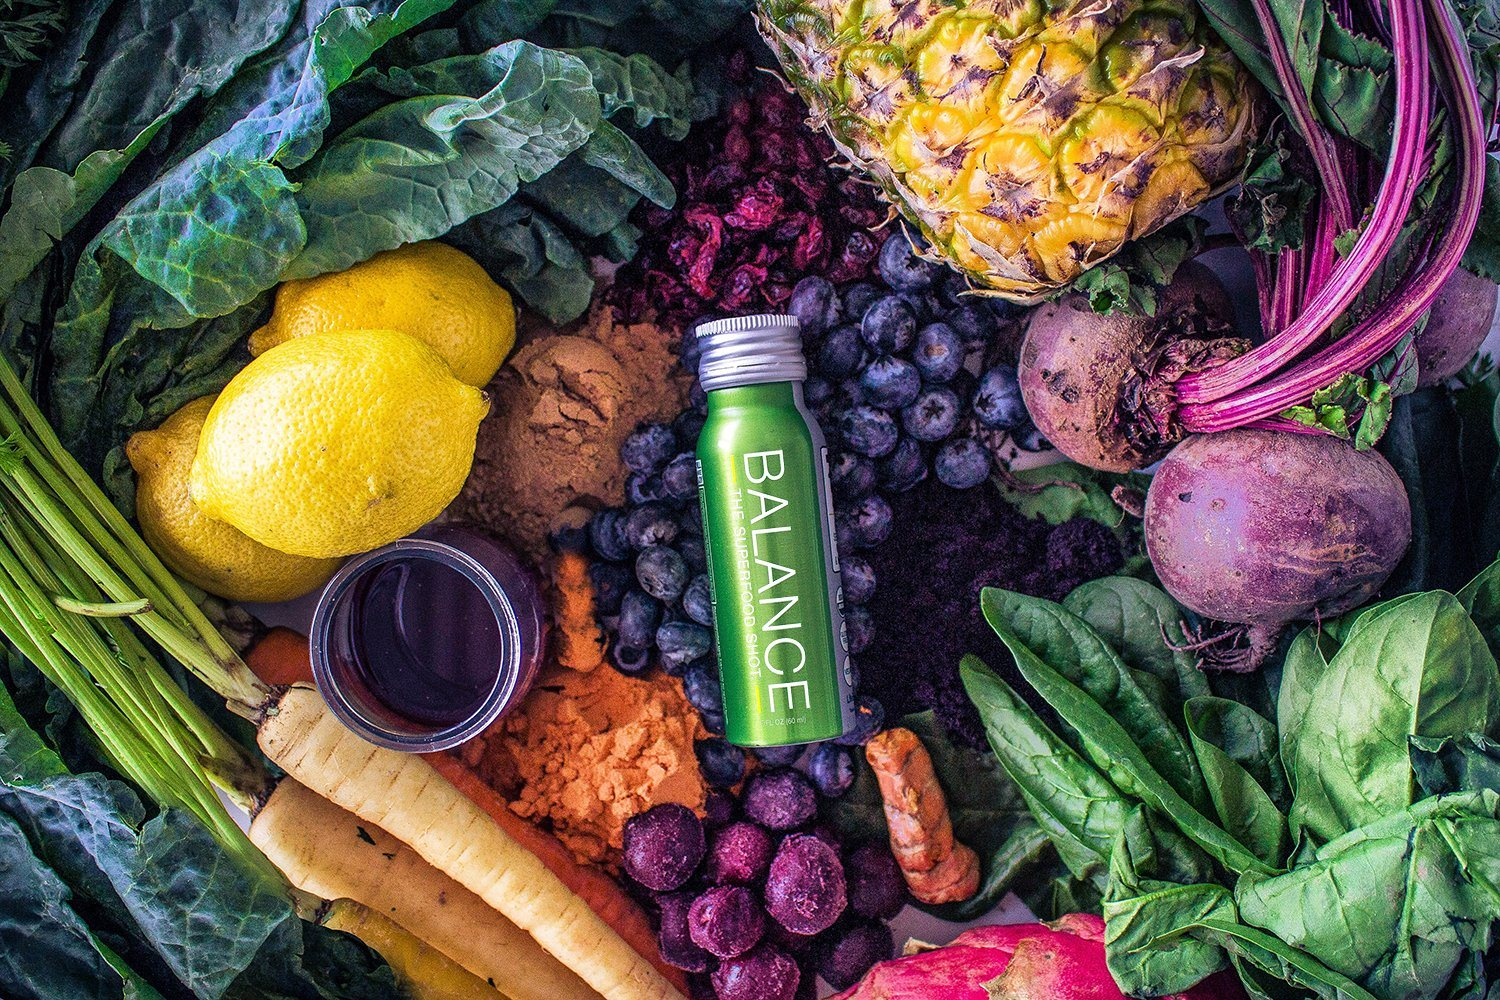 Life Equals rebrands to Balance the Superfood Shot